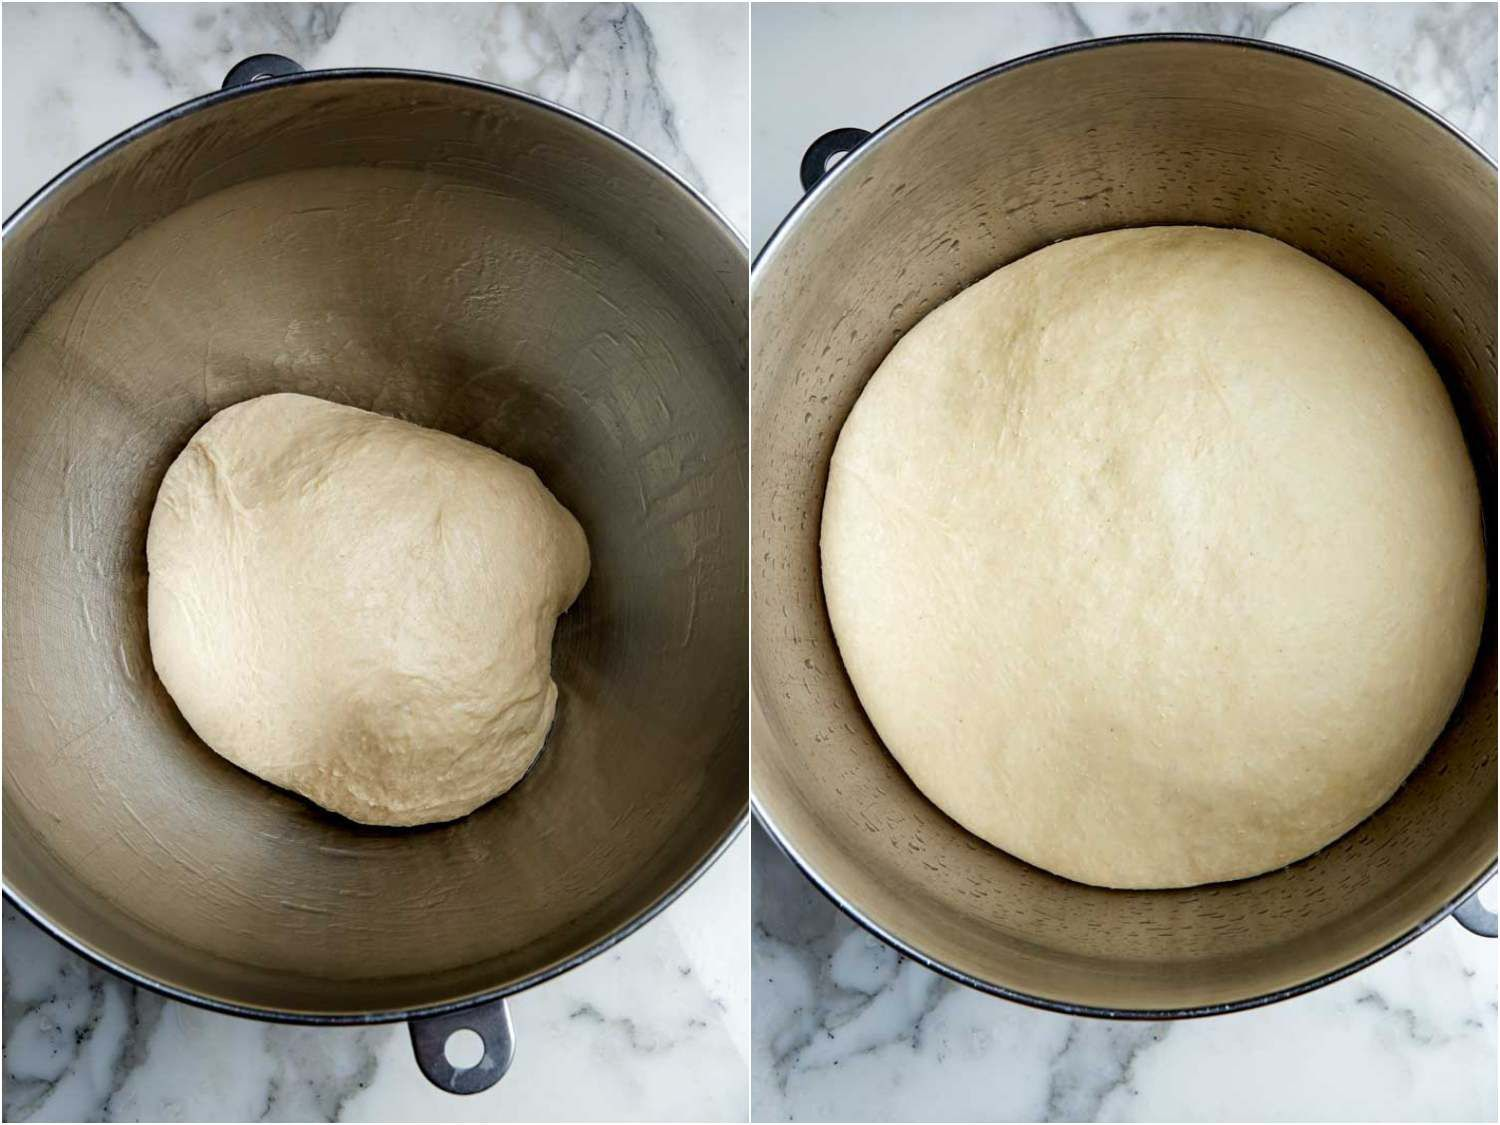 Apple cider doughnut dough before and after its first rise in the bowl, where it more than doubles in bulk